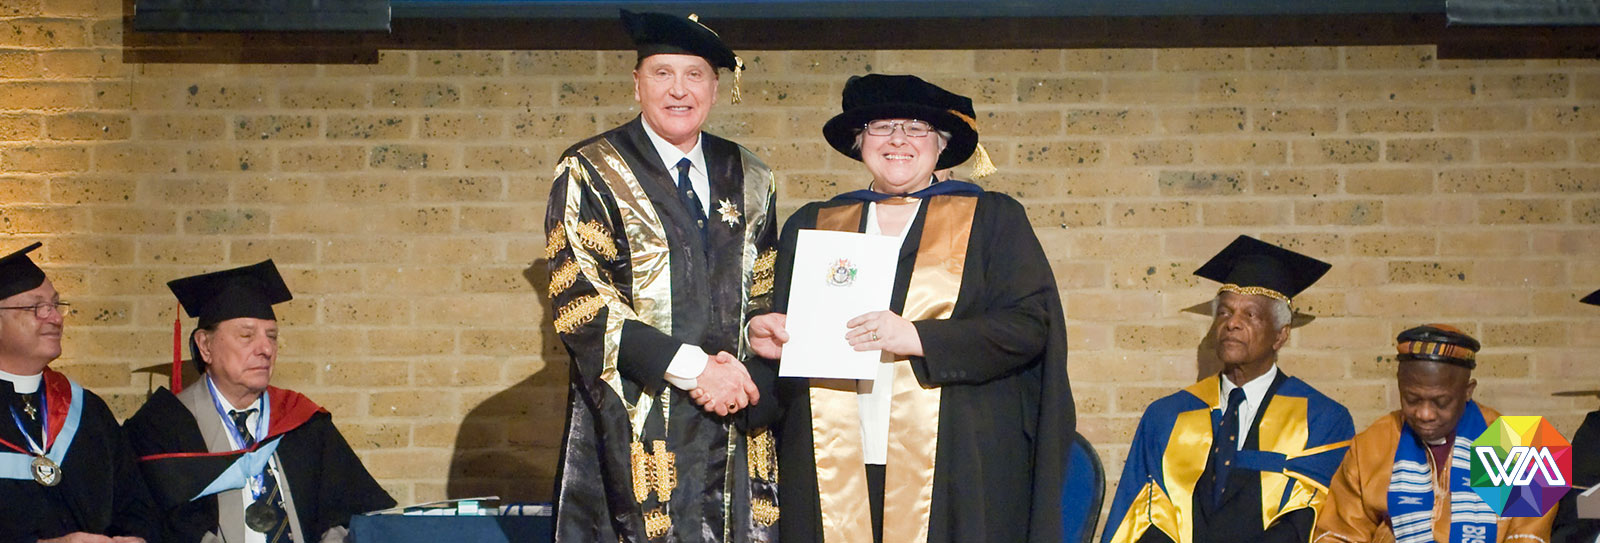 Dr Ruth Todd receiving her PhD in the History of Ideas in 2010 from Dr Brenden Tempest-Mogg